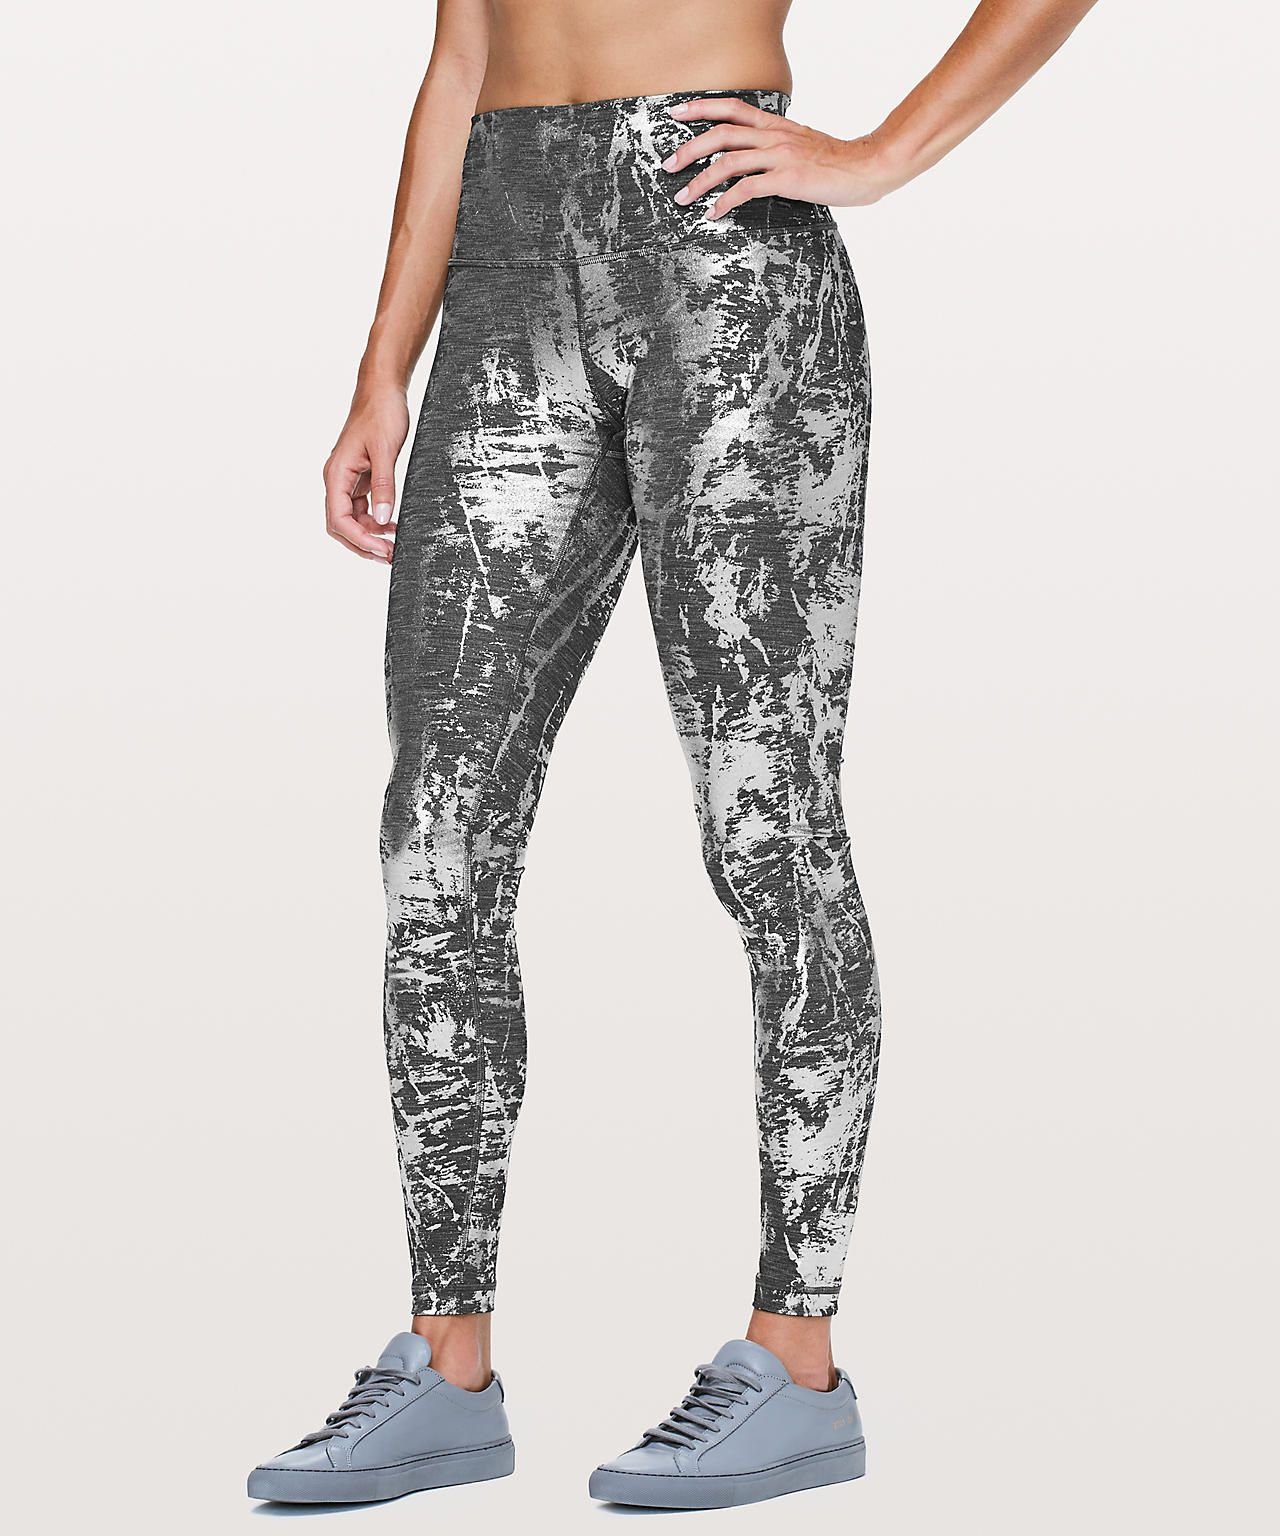 2099d8c2530 ... leggings and tights the entire winter… gifts for her yoga pants.  Crinkle Heather Brindle High Shine Foil